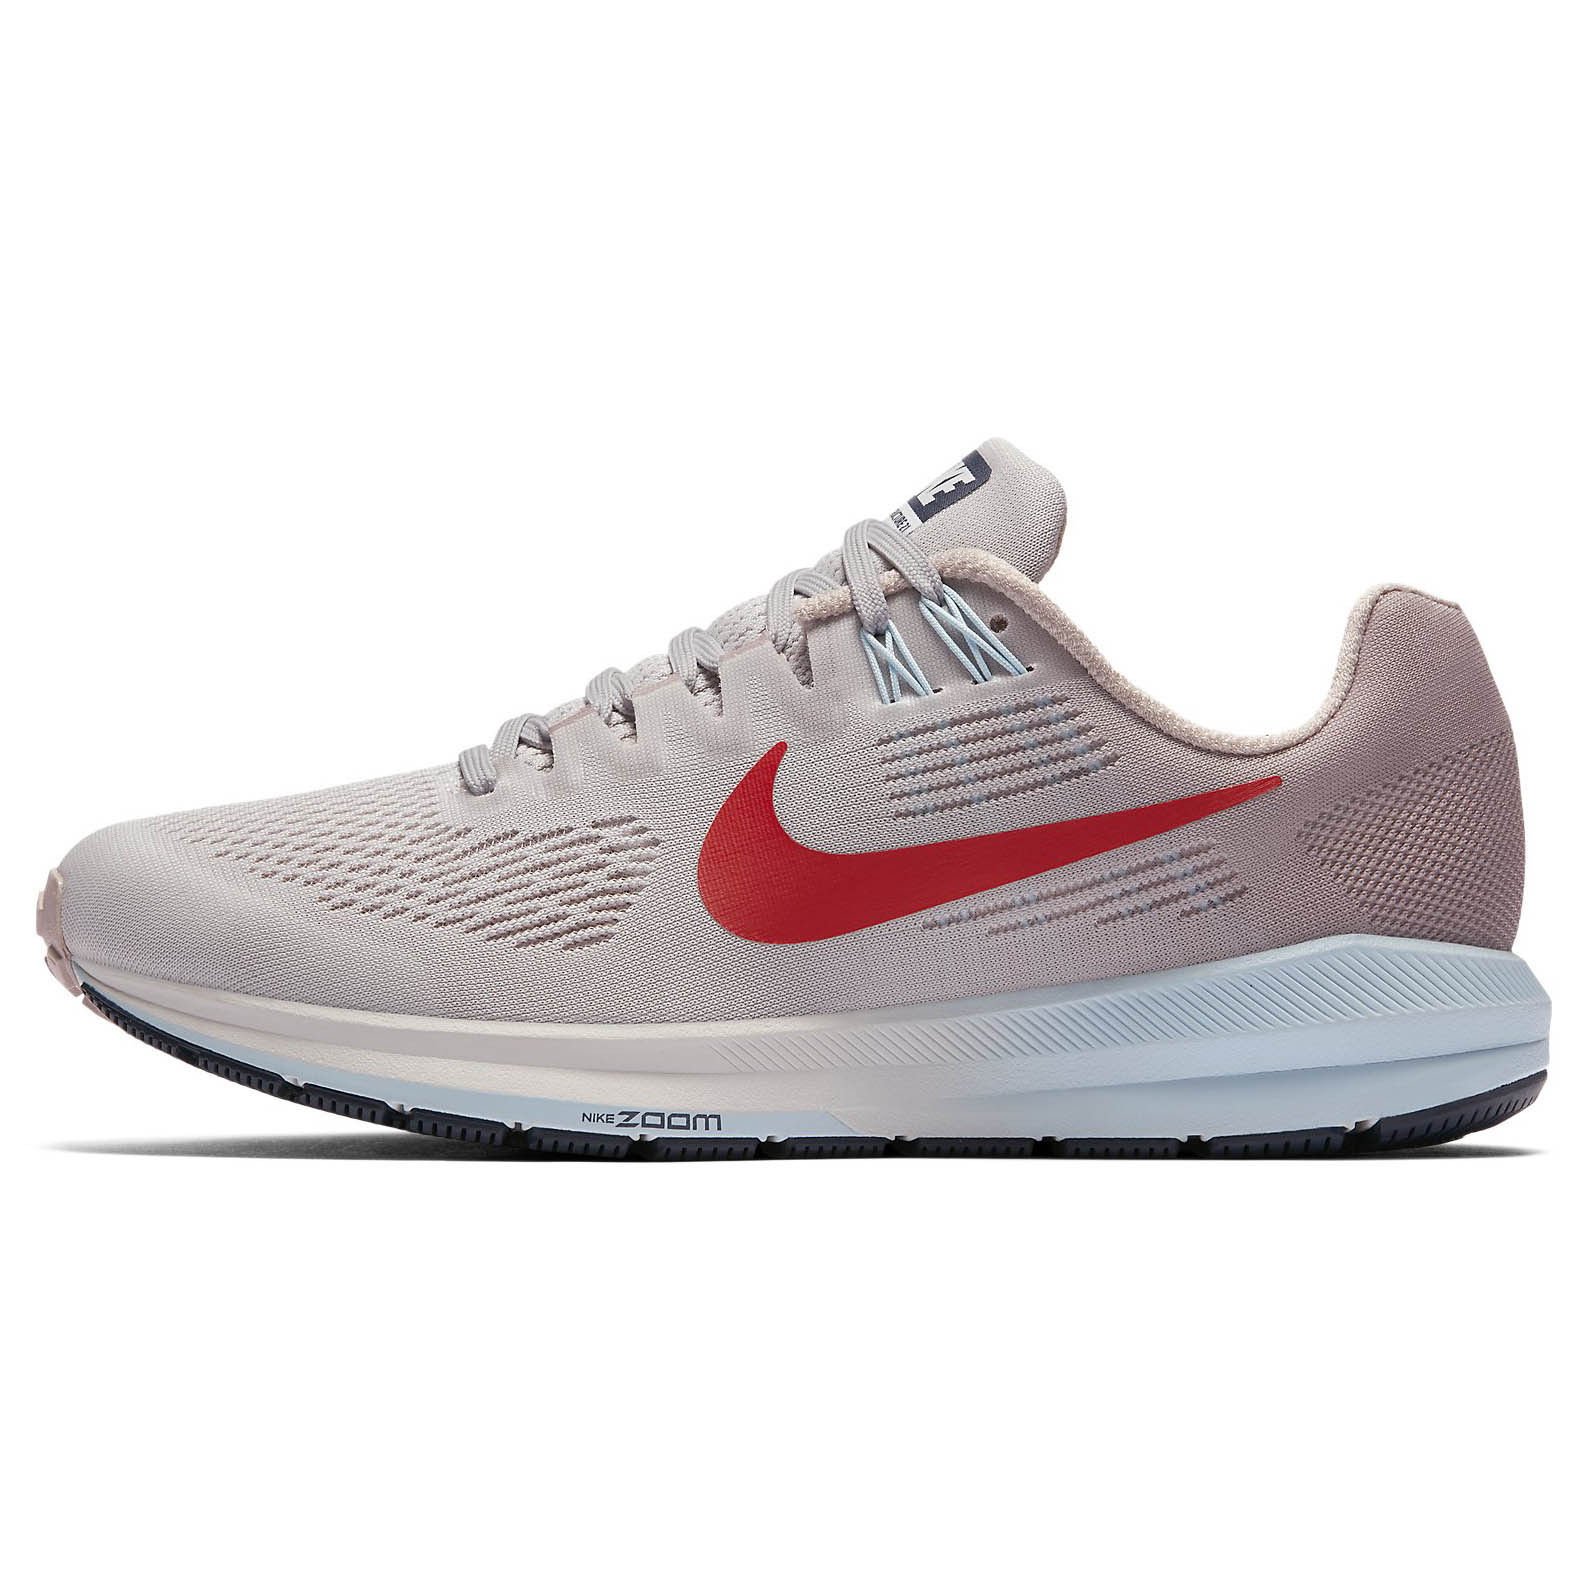 Structure Nencini Nike Zoom 21 Air Sport Wmns fxwnXwt